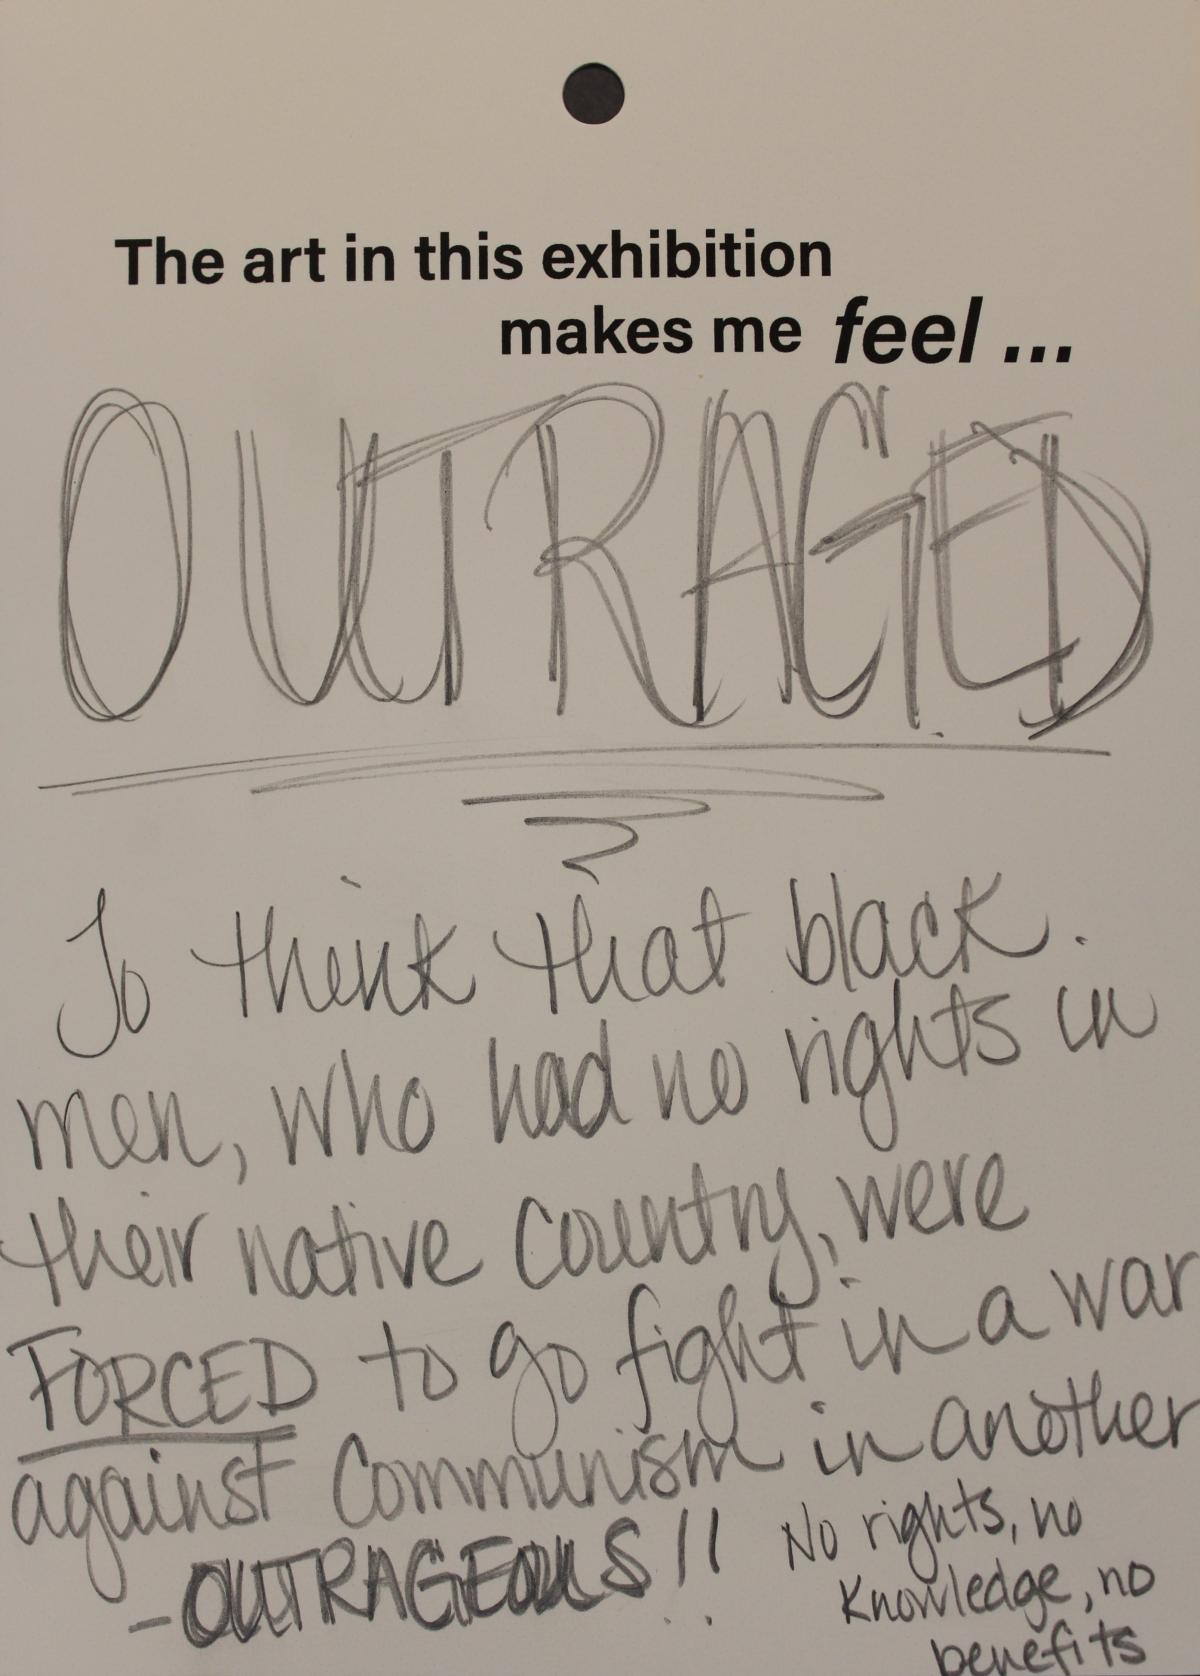 A visitor comment card describing outrage over the Vietnam War